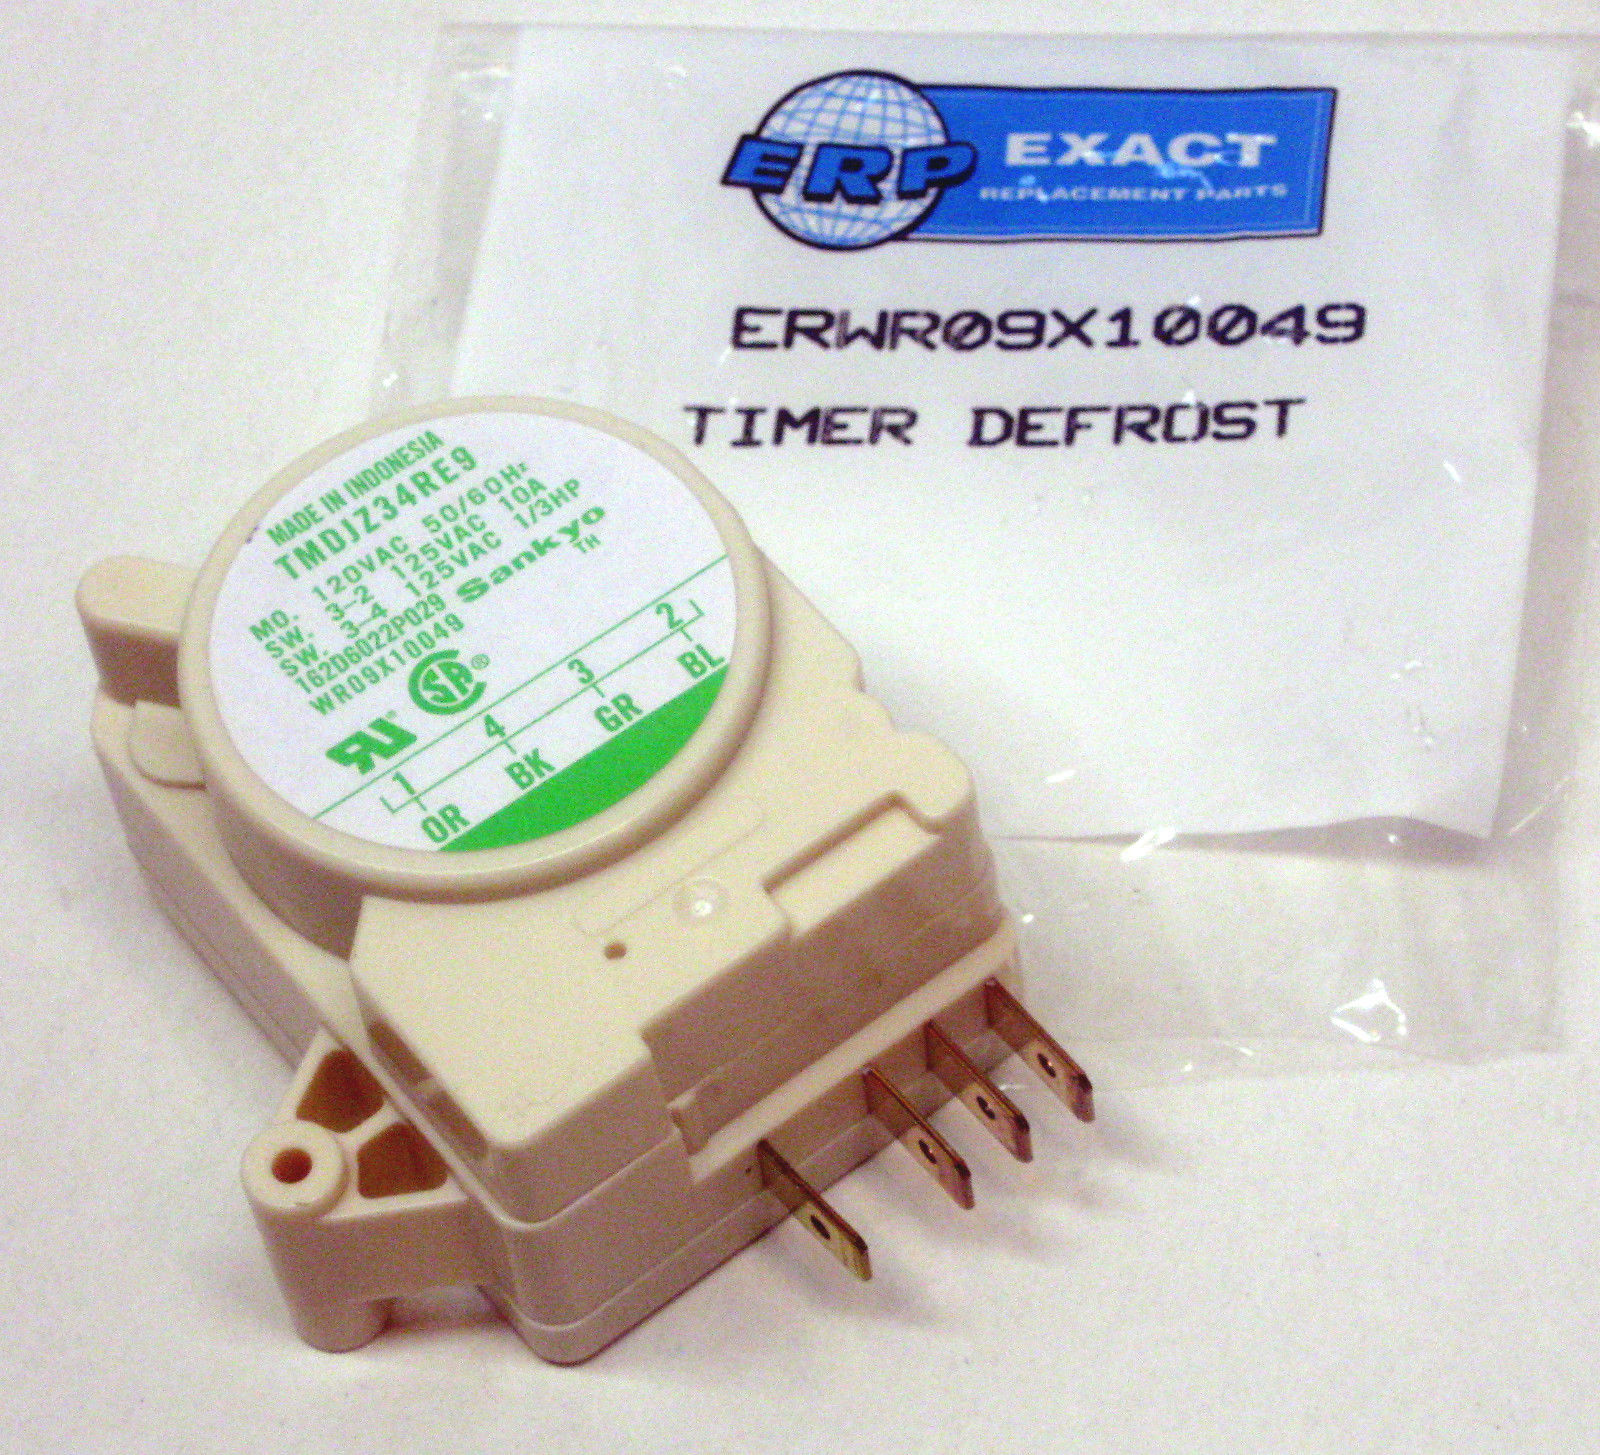 Wr09x10049 For Ge Refrigerator Defrost Timer Control